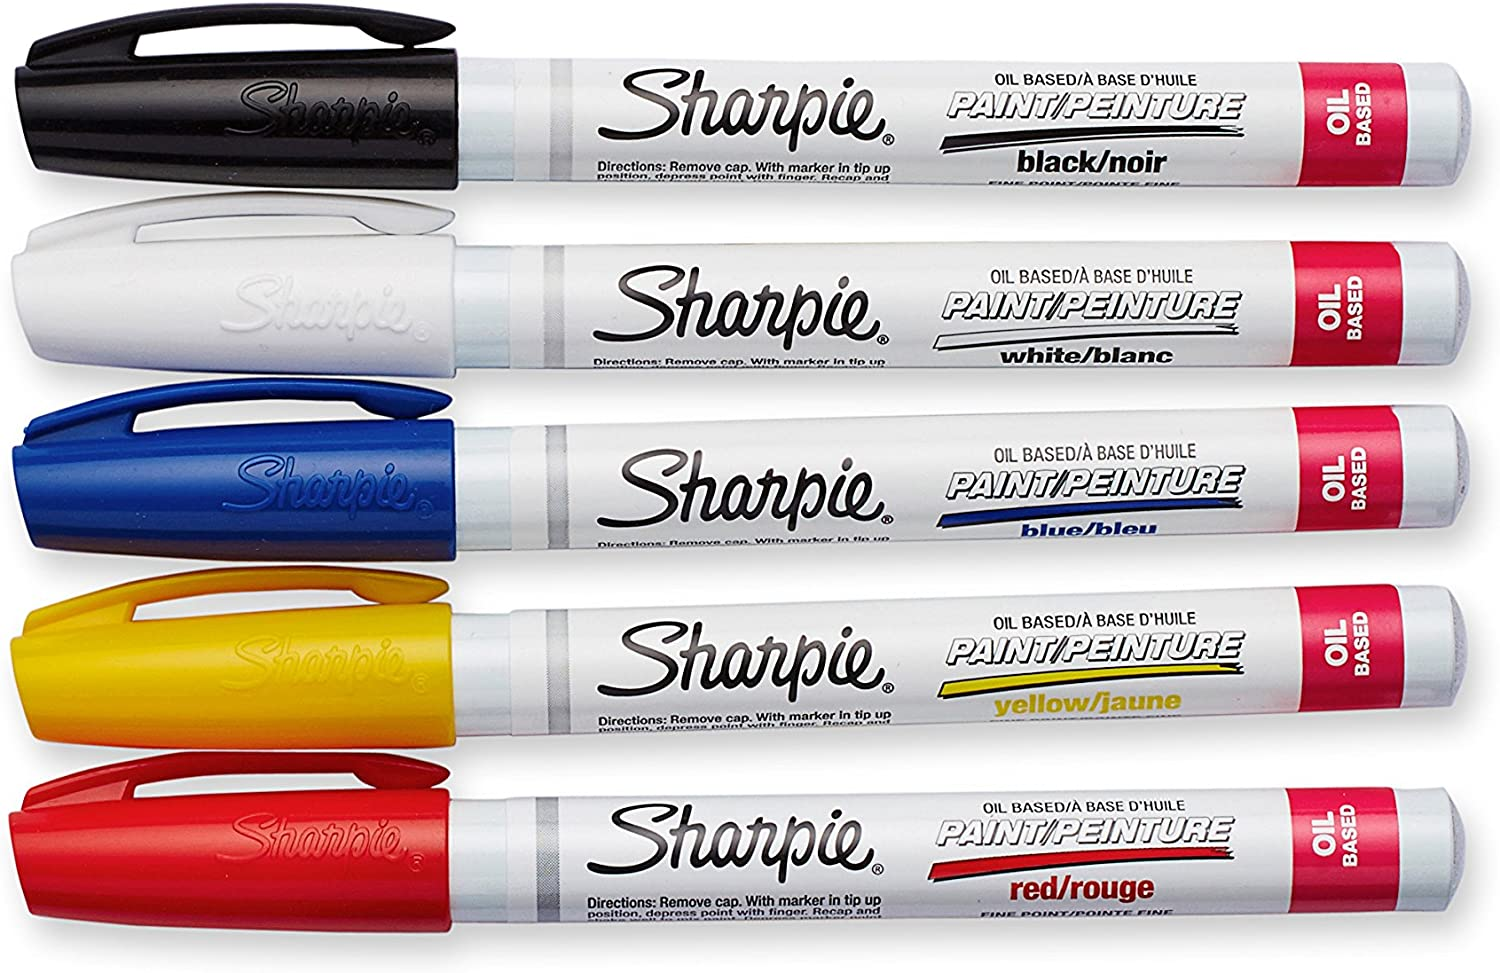 1 Blister Pack with 5 Markers Sharpie 37371PP Oil-Based Paint Markers Pack of 1 Assorted Colors Fine Point Total of 5 Markers